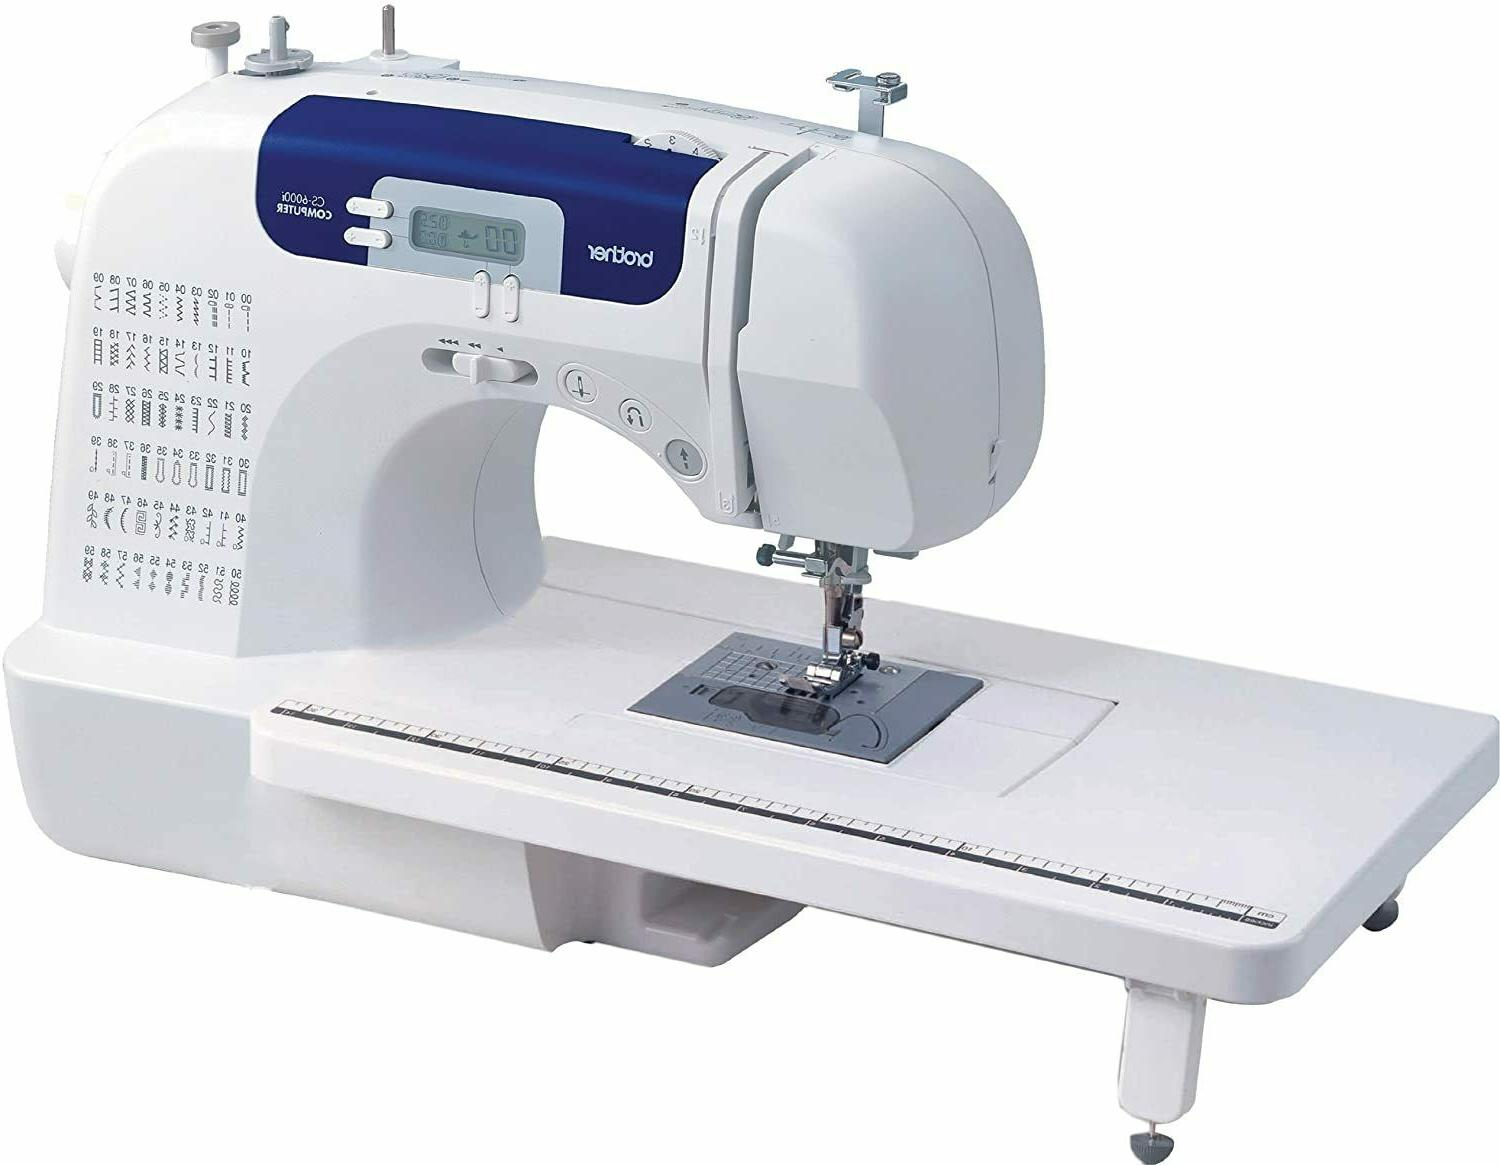 NEW Brother 60-Stitch Computerized Machine WideTable LCD